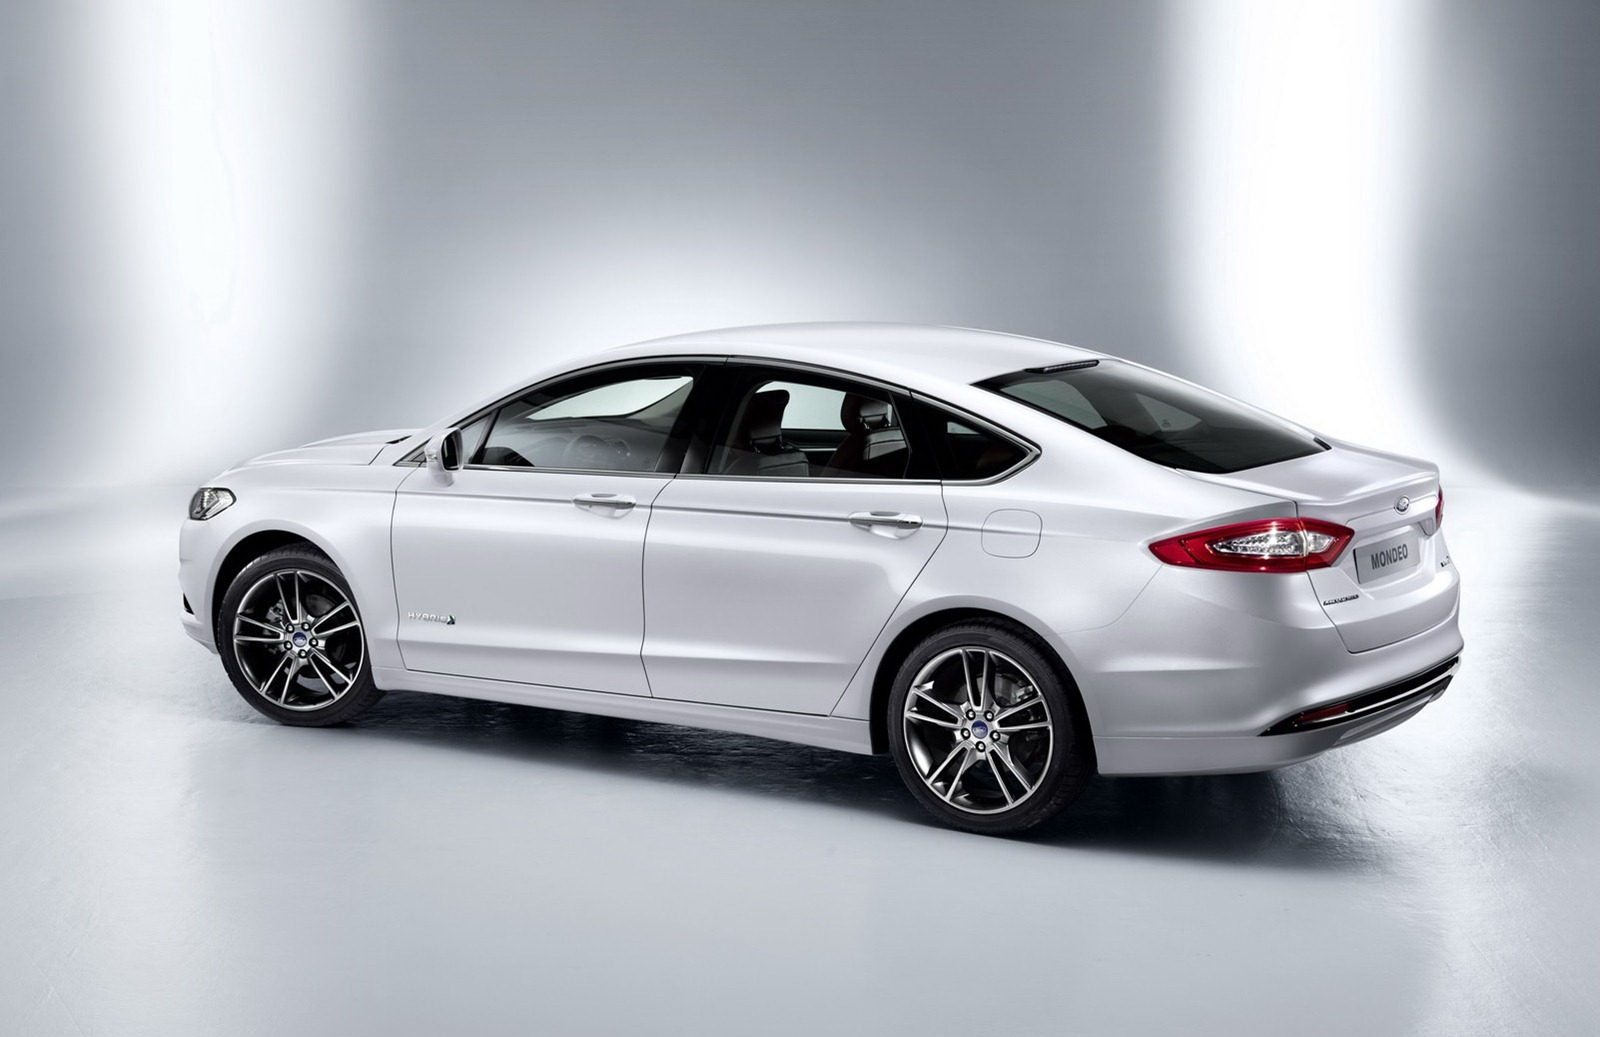 2013 ford mondeo 1 0 litre ecoboost motor le donat lacak turkeycarblog. Black Bedroom Furniture Sets. Home Design Ideas